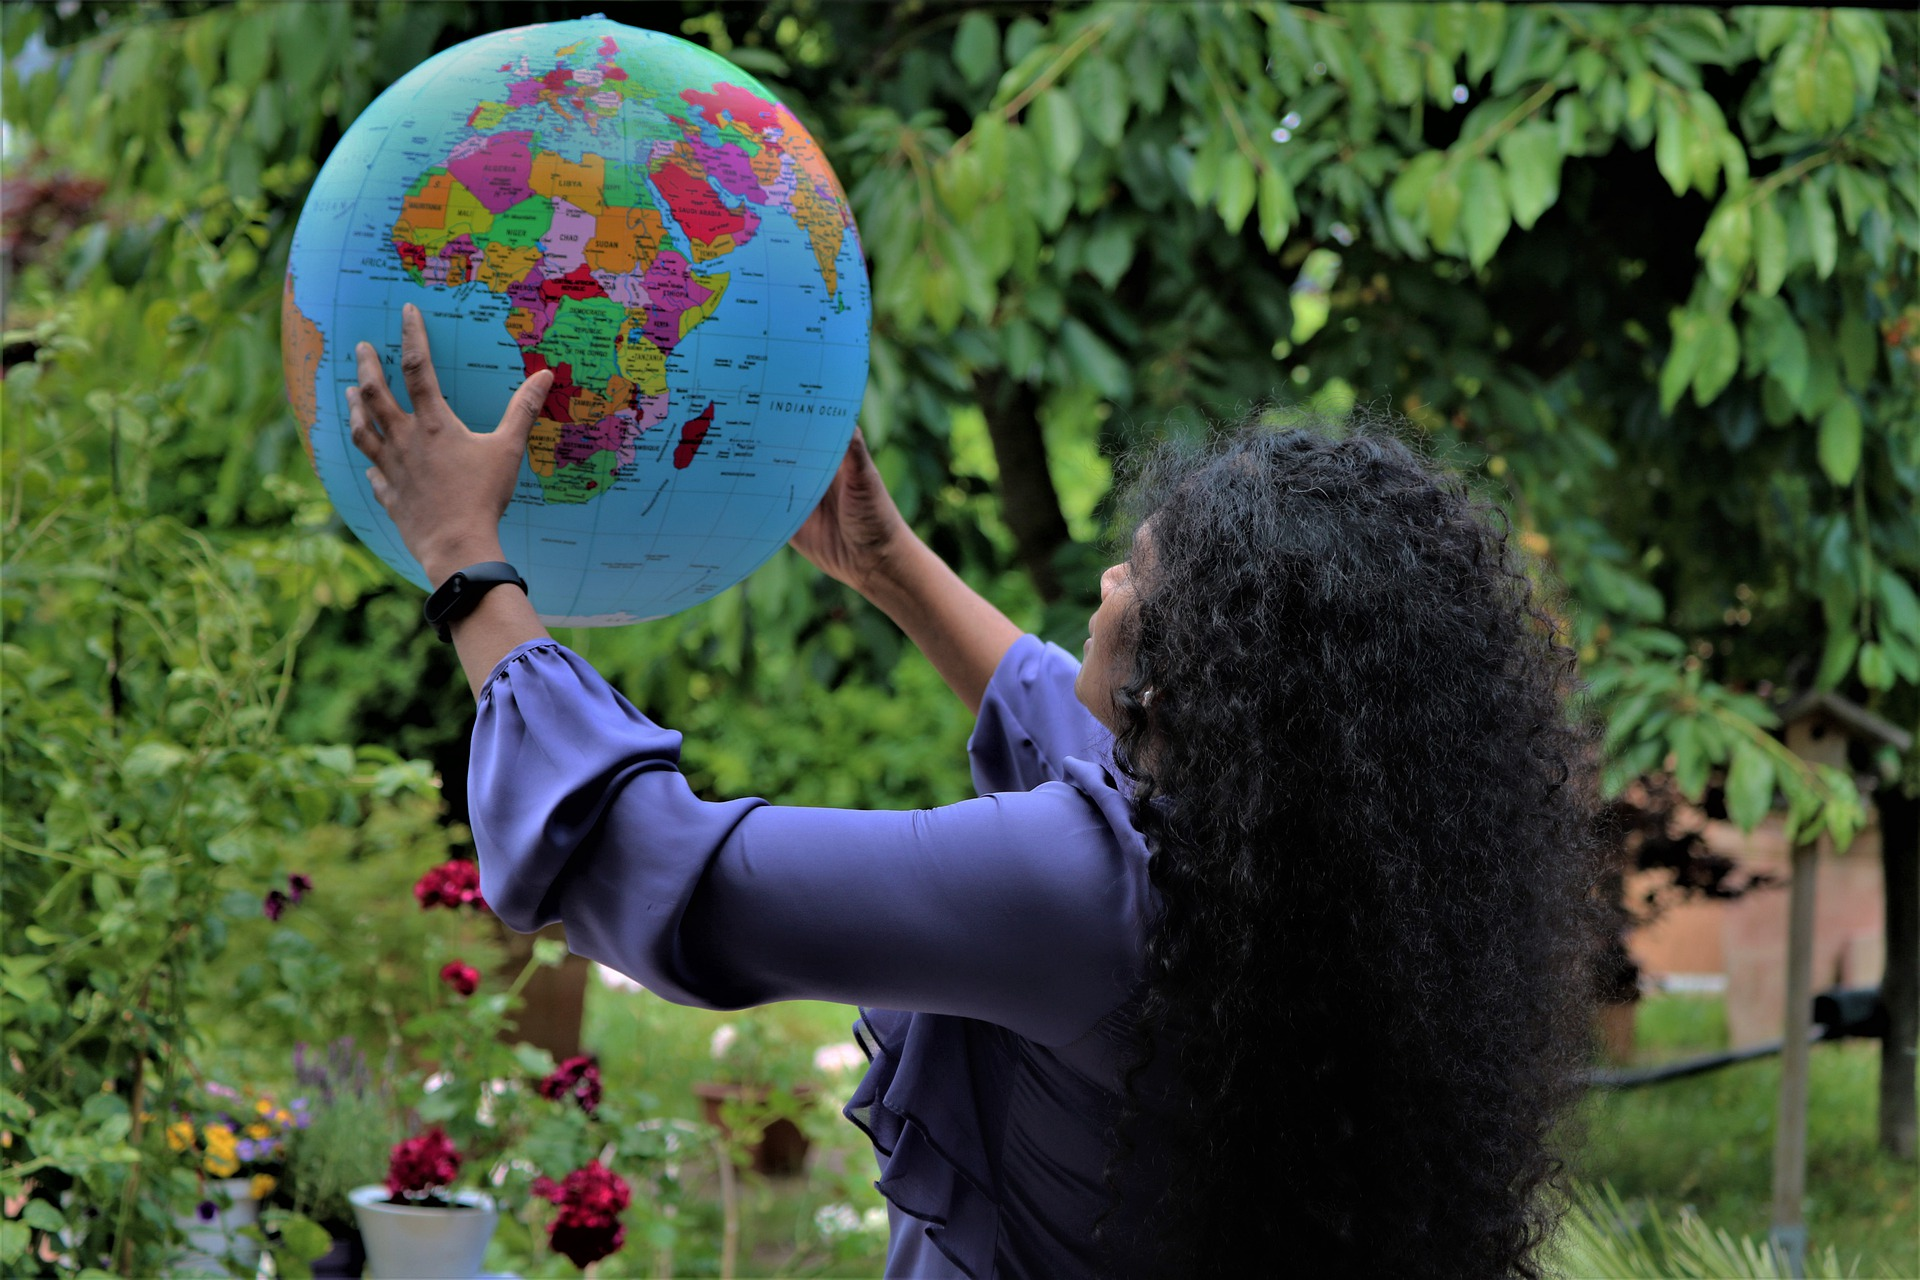 women looking at a globe map